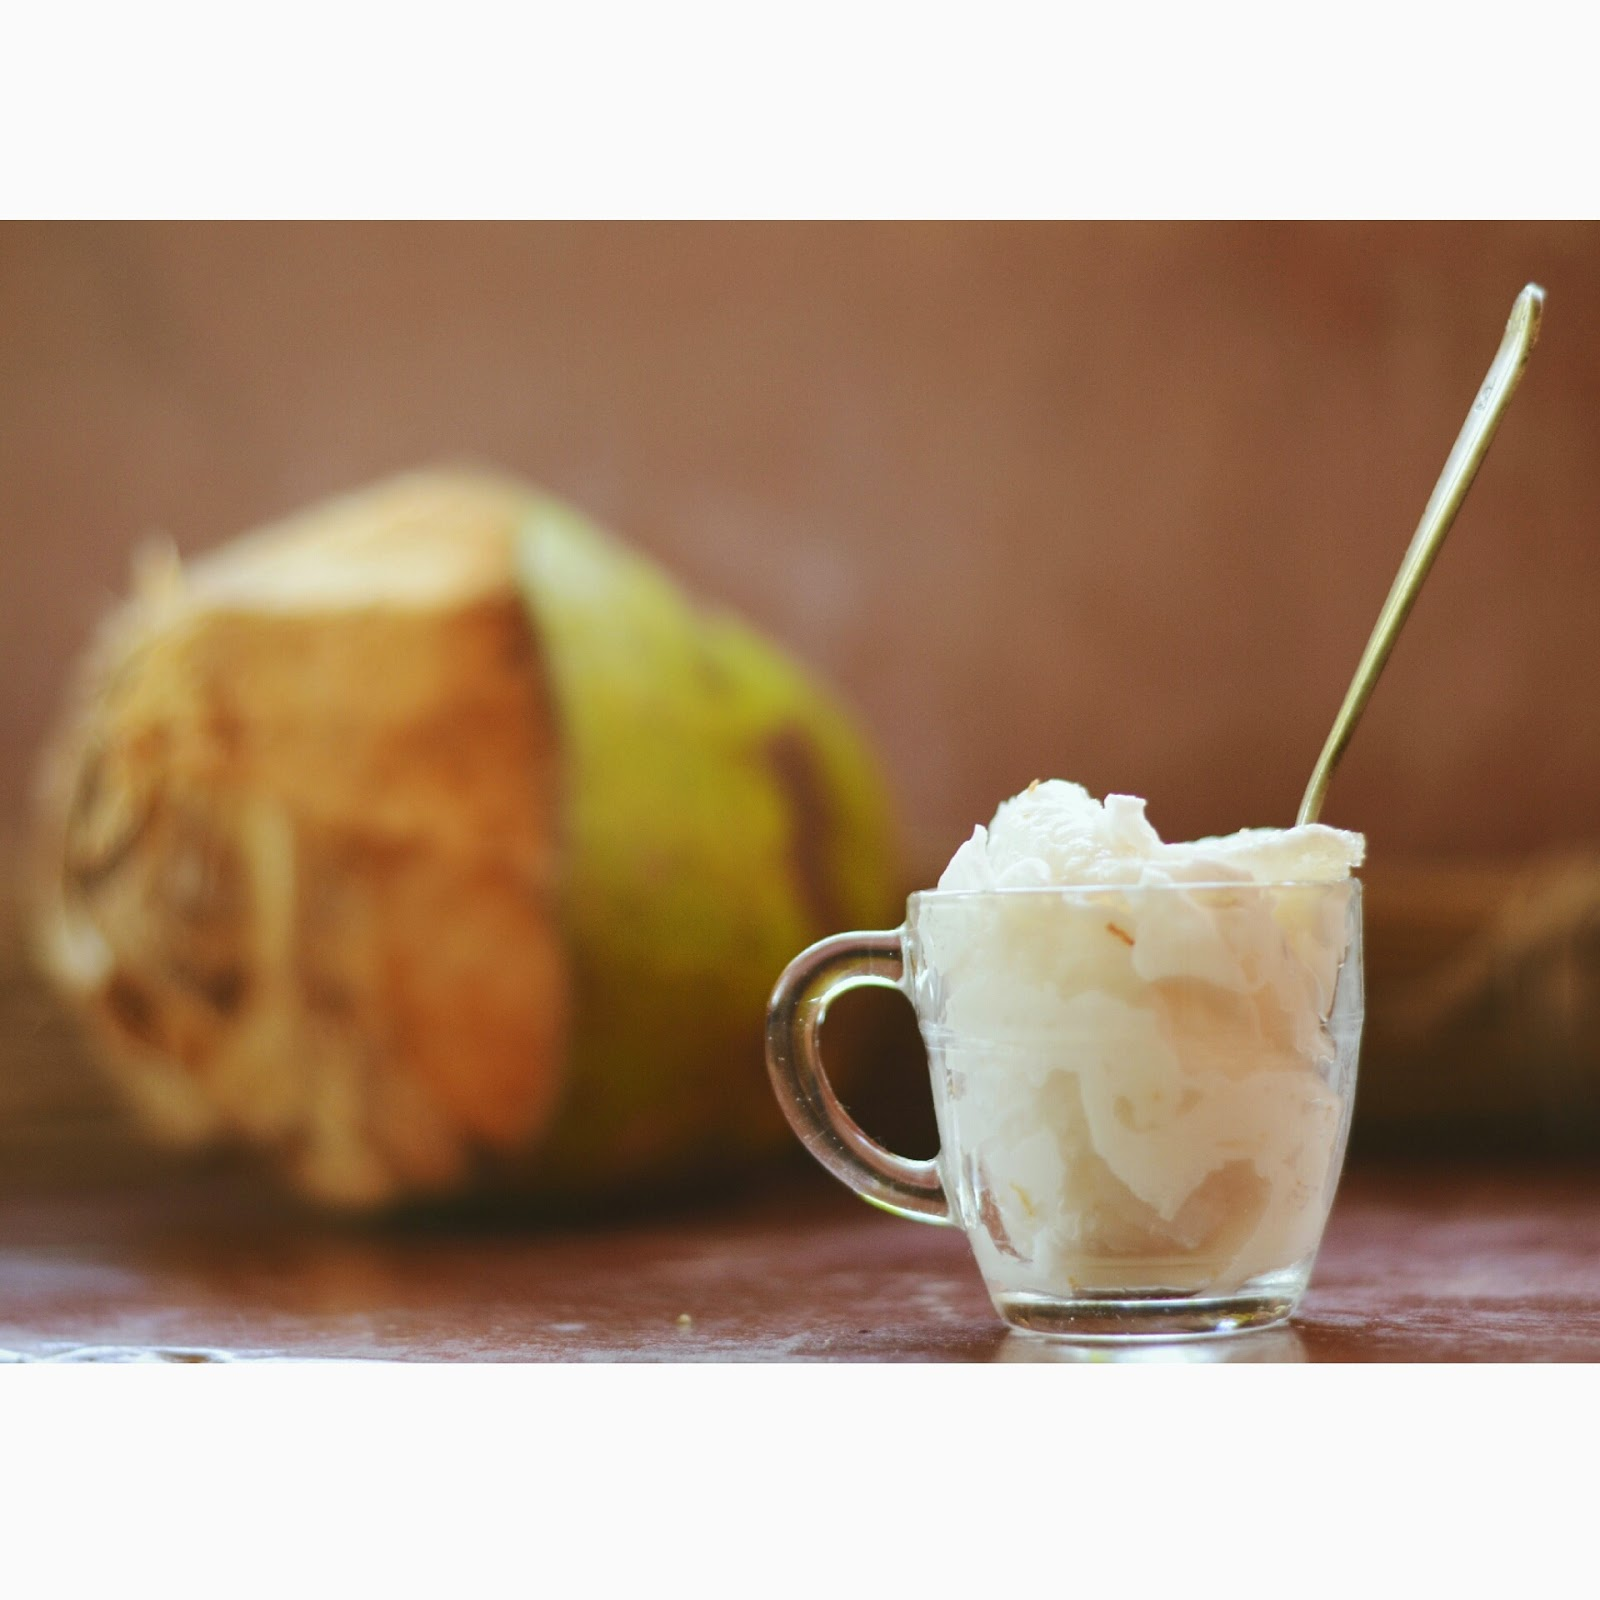 coconut, tender coconut, clean eats, fresh, produce, goa, food, nature, natural, decor, cutlery